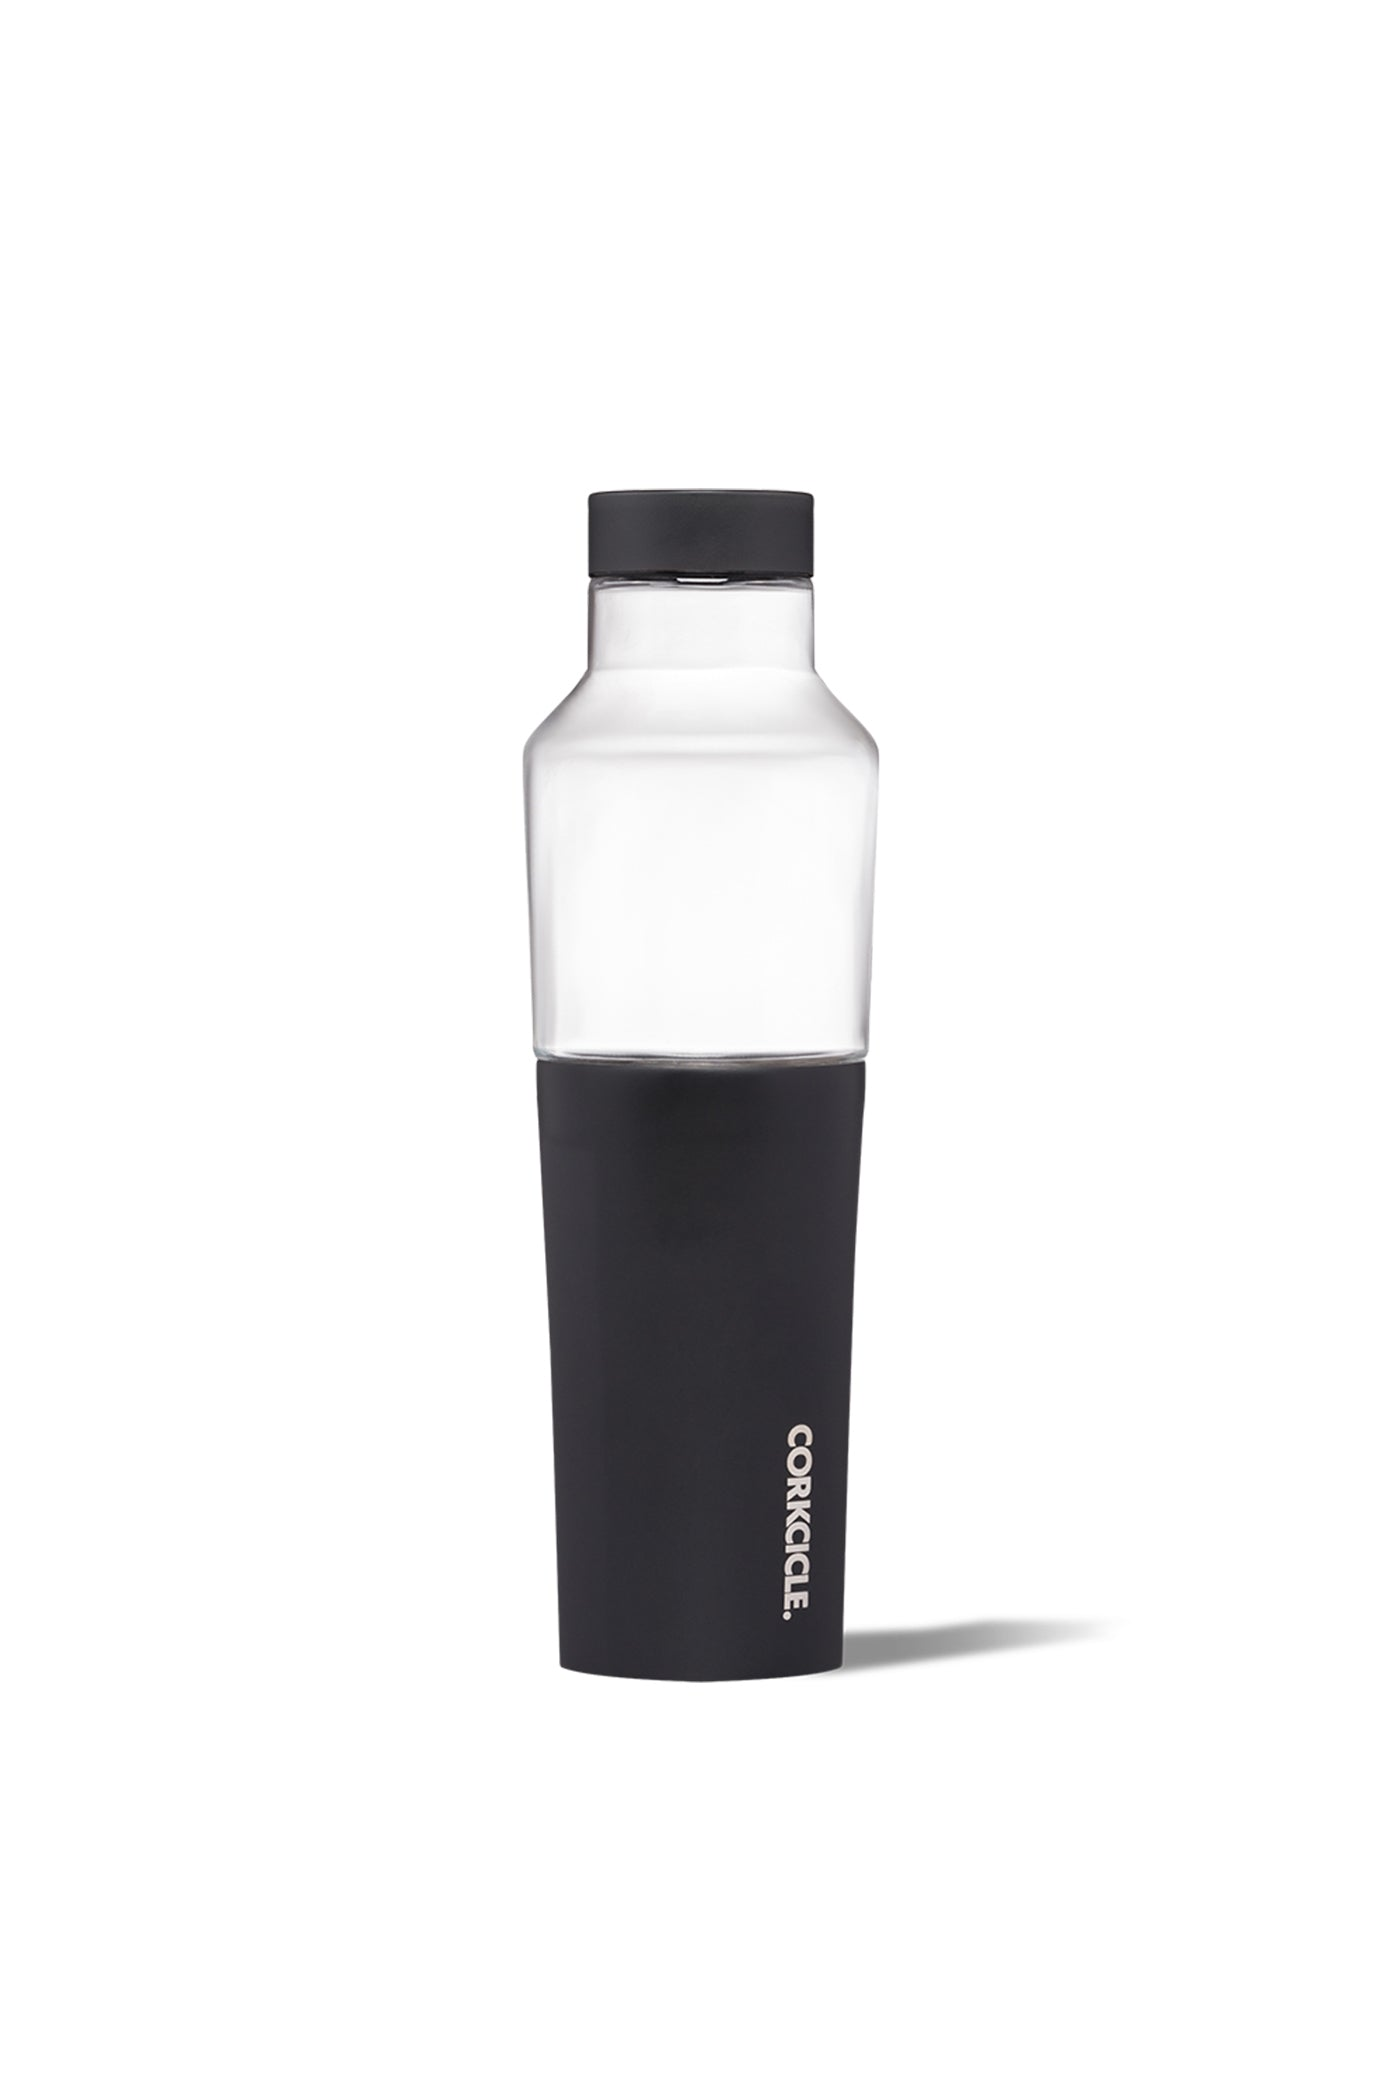 Hybrid Canteen by Corkcicle